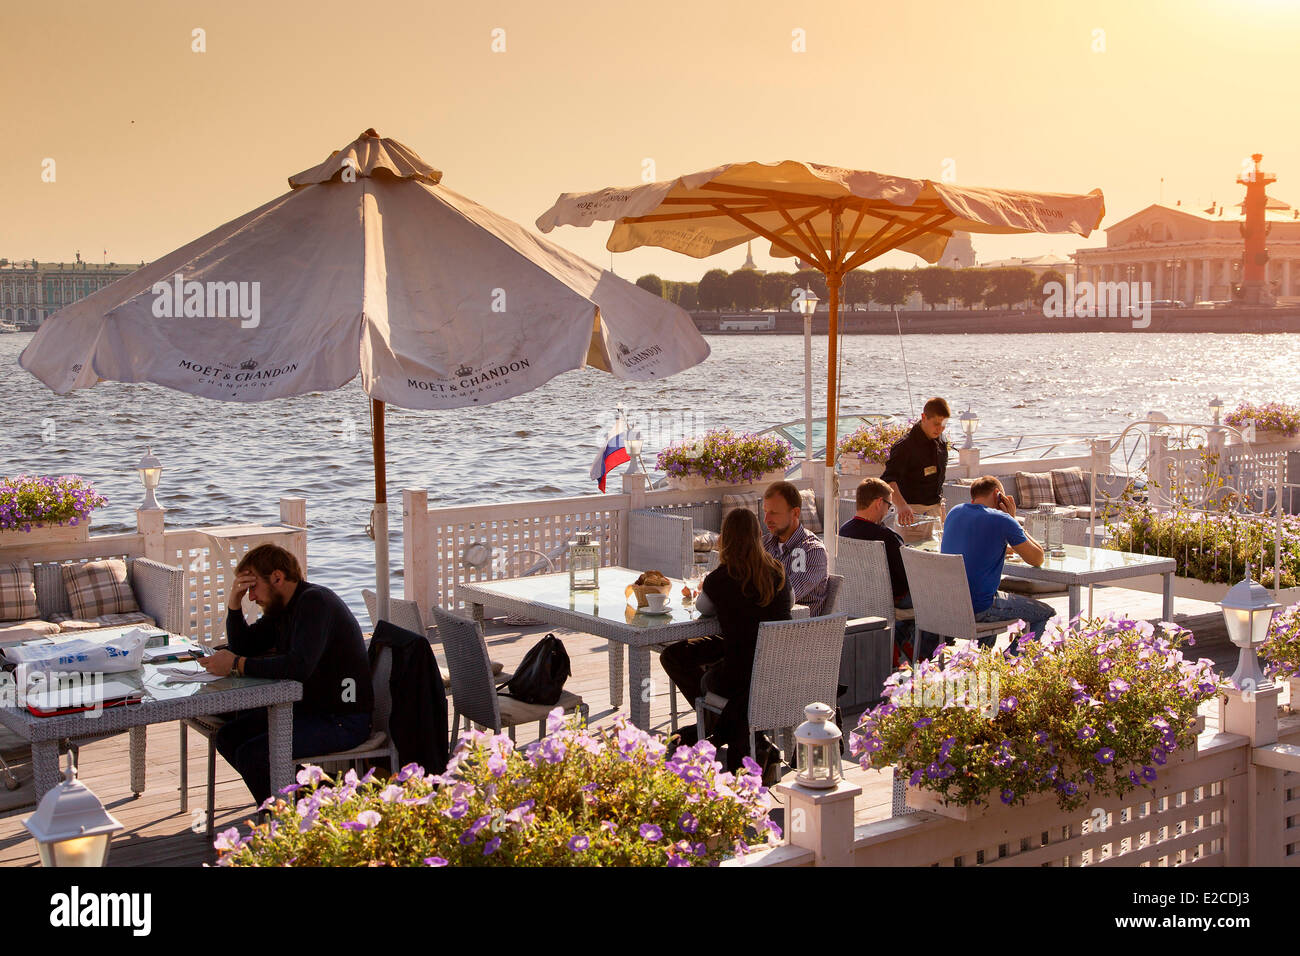 Russia, Saint Petersburg, listed as World Heritage by UNESCO, the Flying Dutchman restaurant - Stock Image